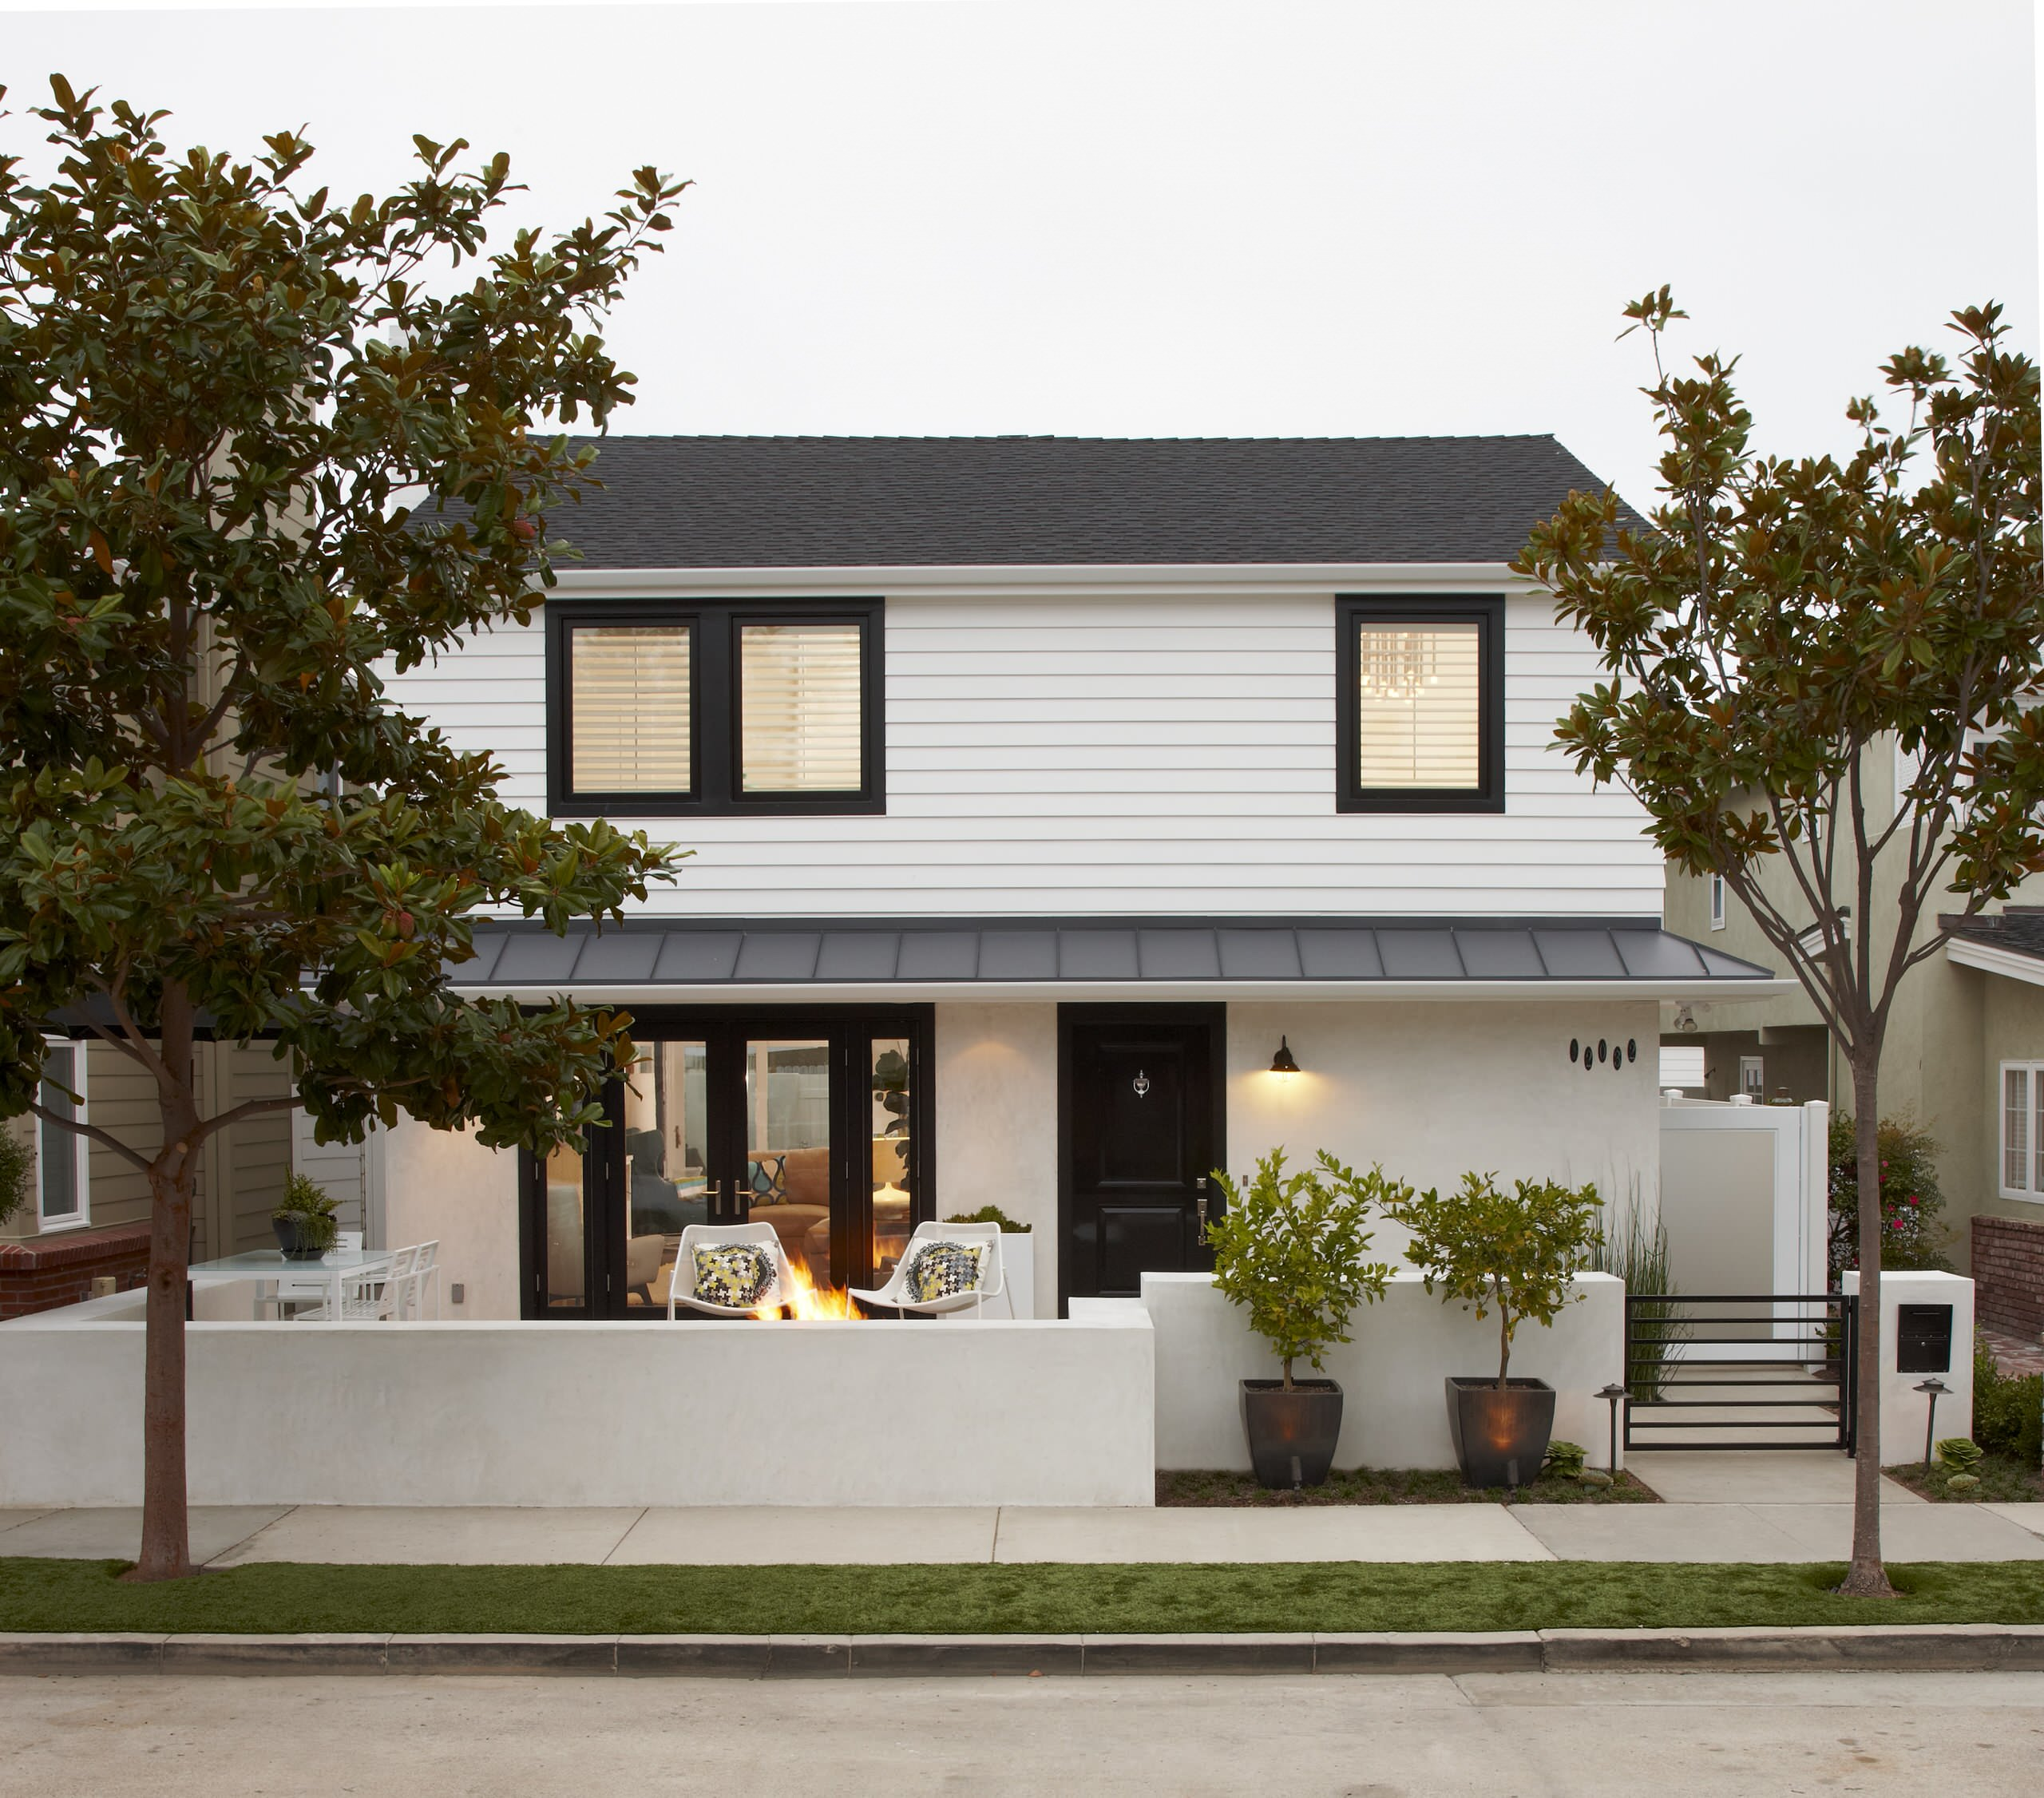 White house black trim Transitional Exterior concrete paving dormer windows entrance front door